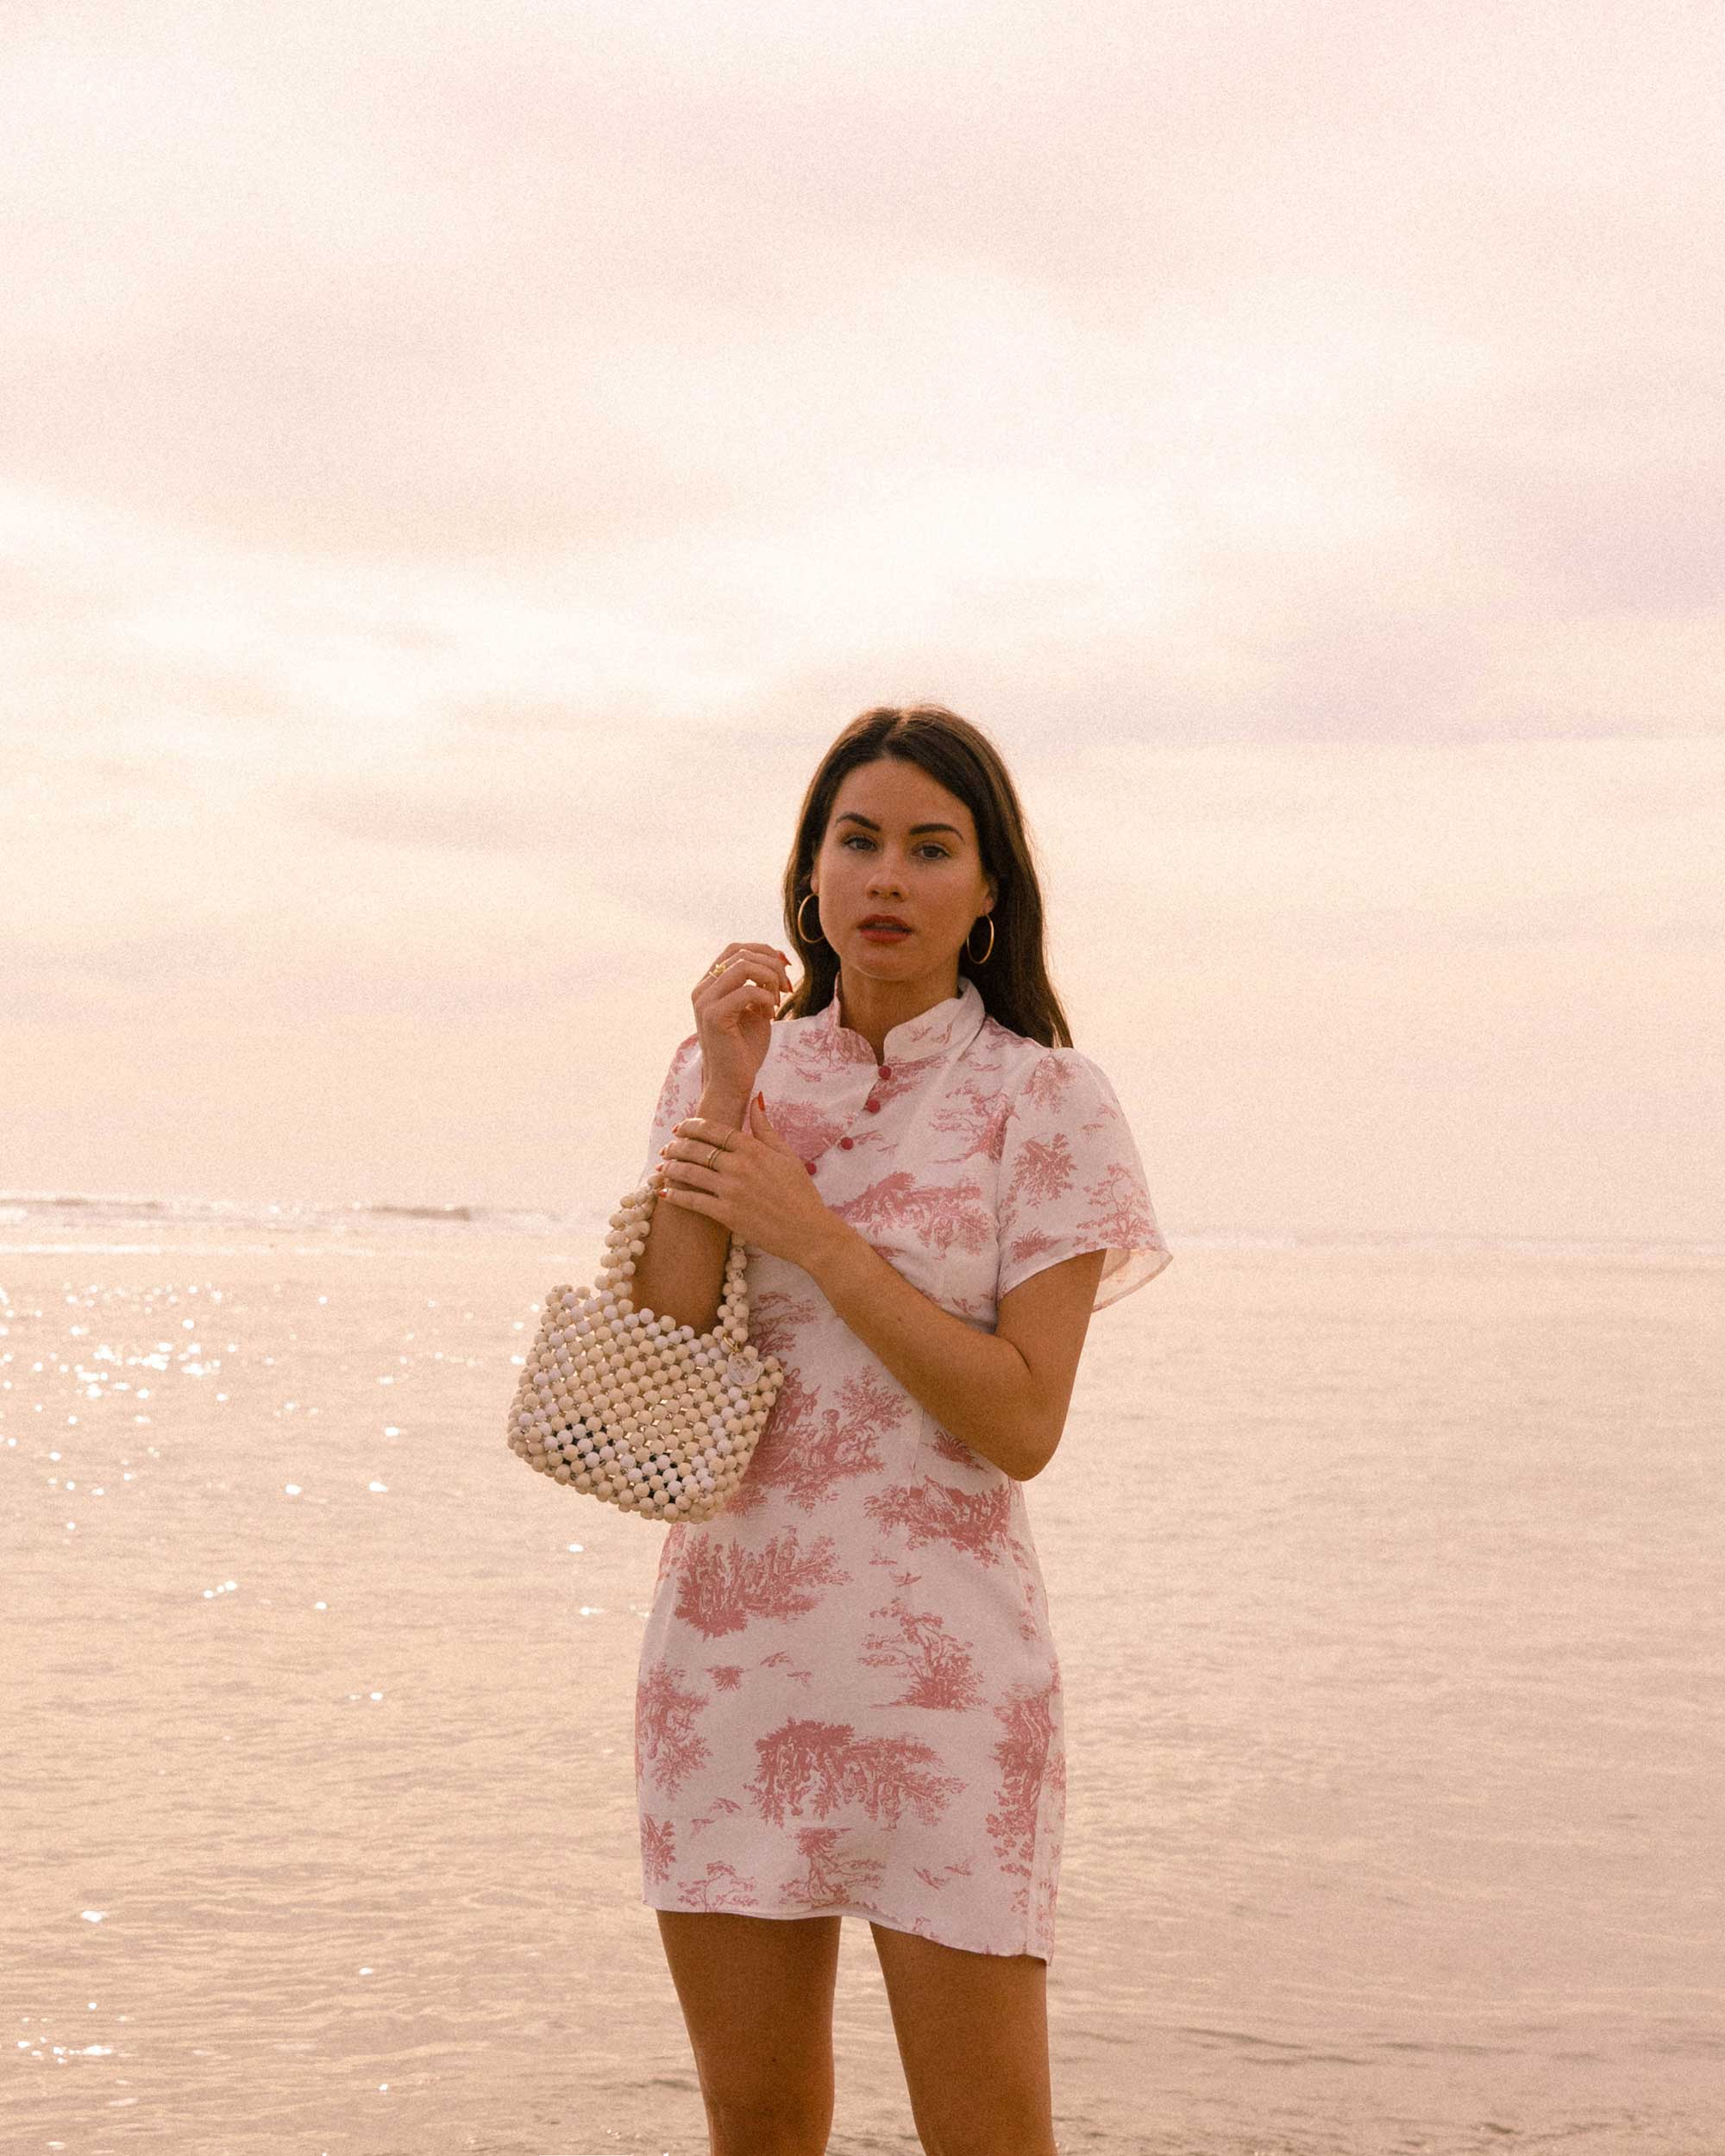 Sarah Butler of Sarah Styles Seattle wears Stone Cold Fox Lure Pink Toile Print Mini Dress in Newport Beach, California for the perfect spring outfit | @sarahchristine -5.jpg